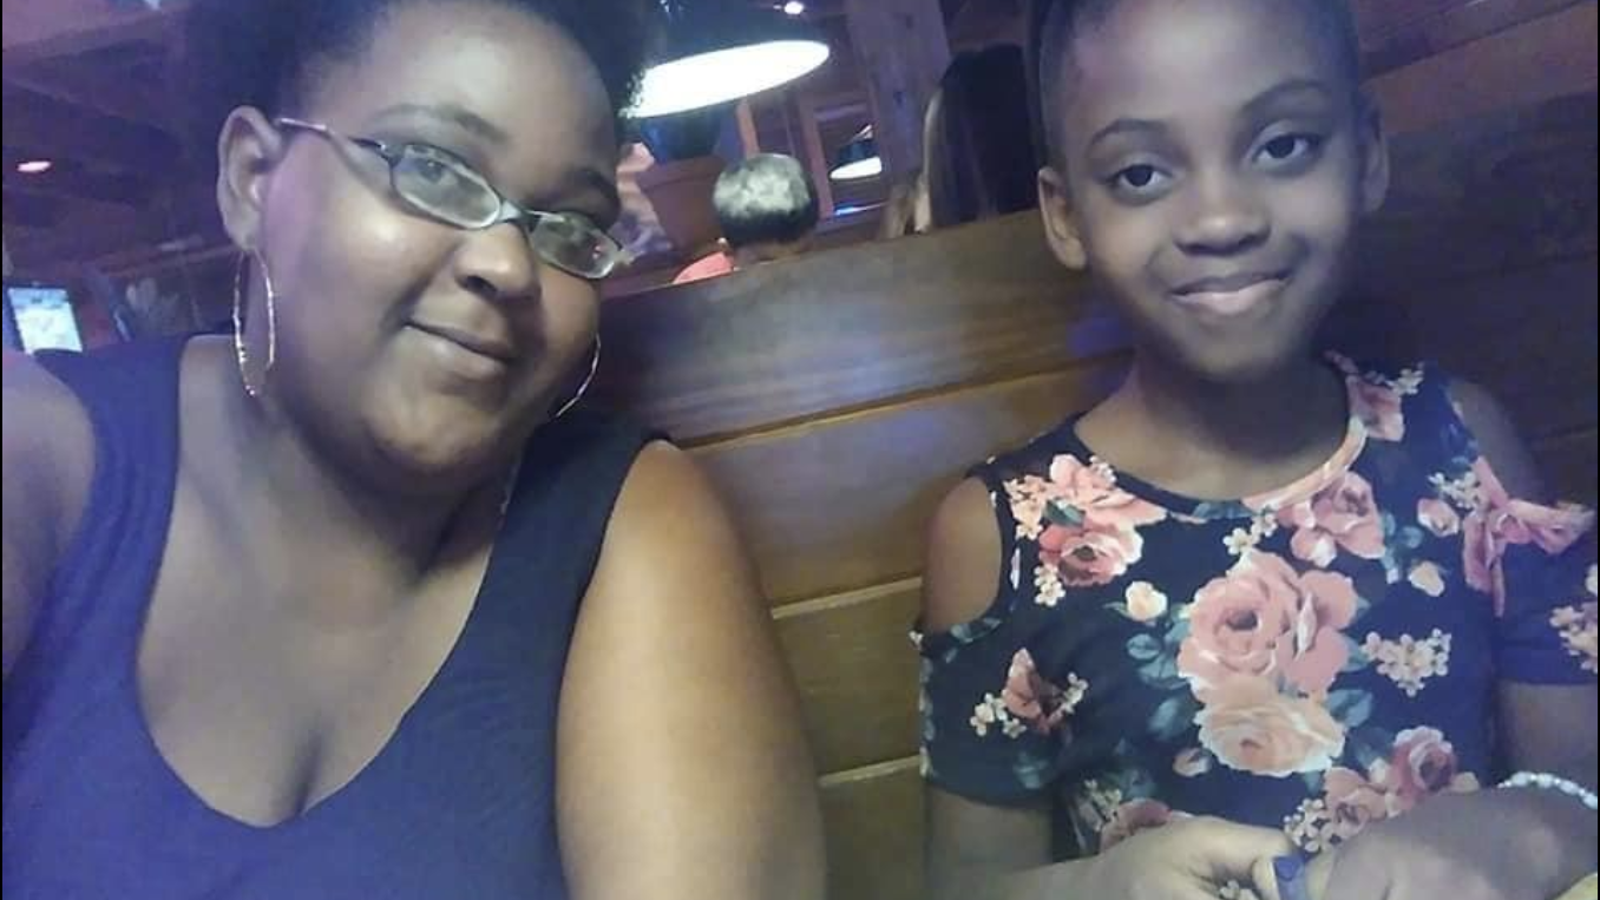 Family of 9-Year-Old Says Racist Bullying Drove Her to Suicide